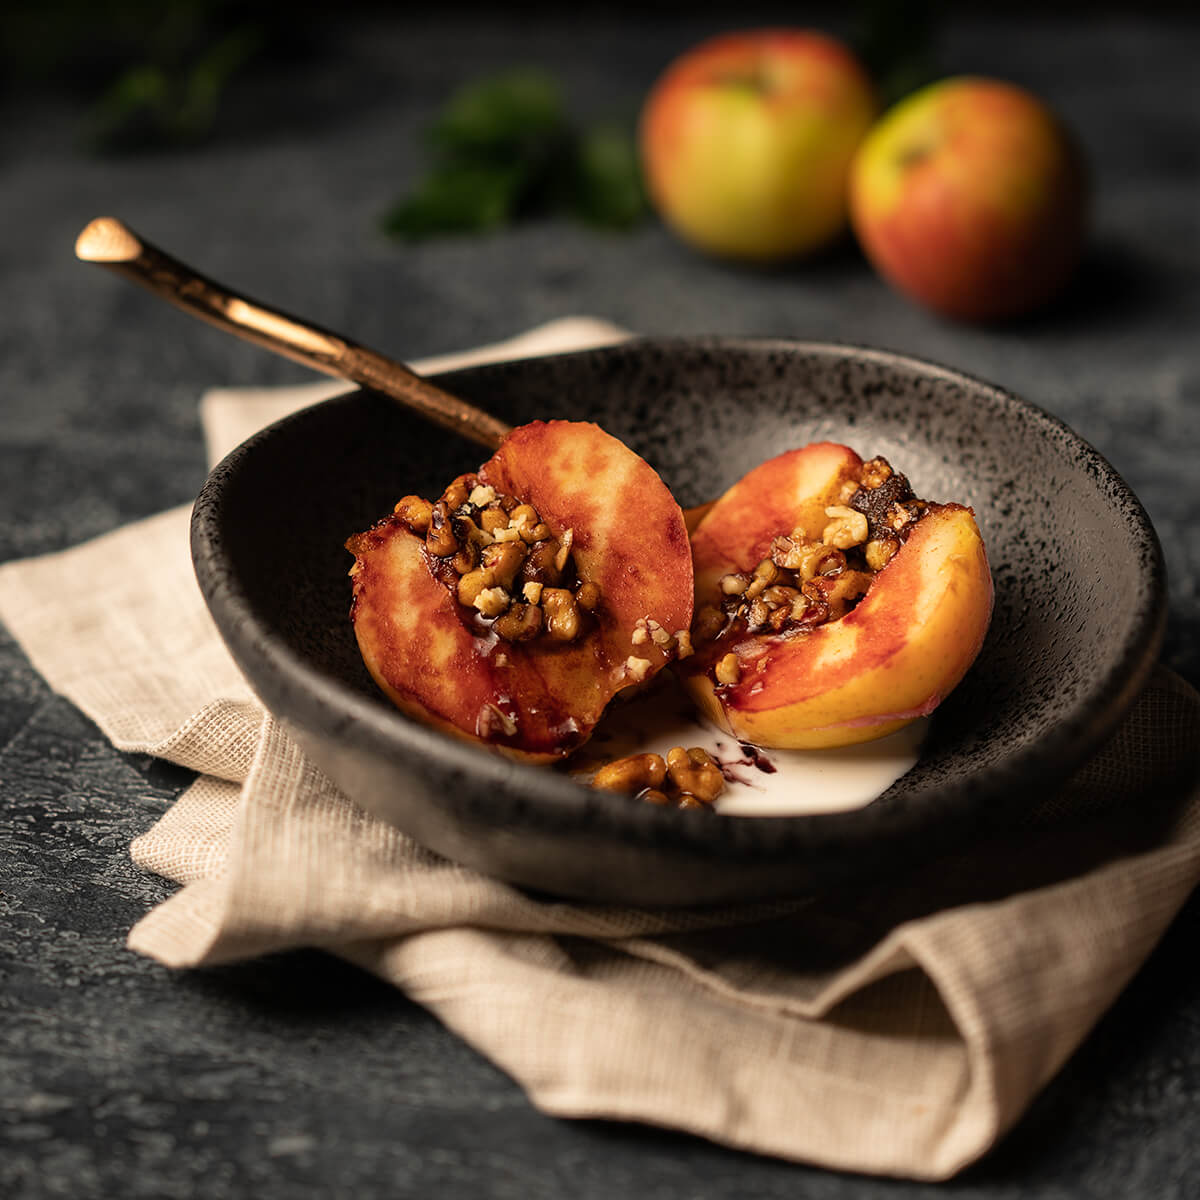 Baked Apples in a bowl covered with Gaia Herbs Black Elderberry Syrup